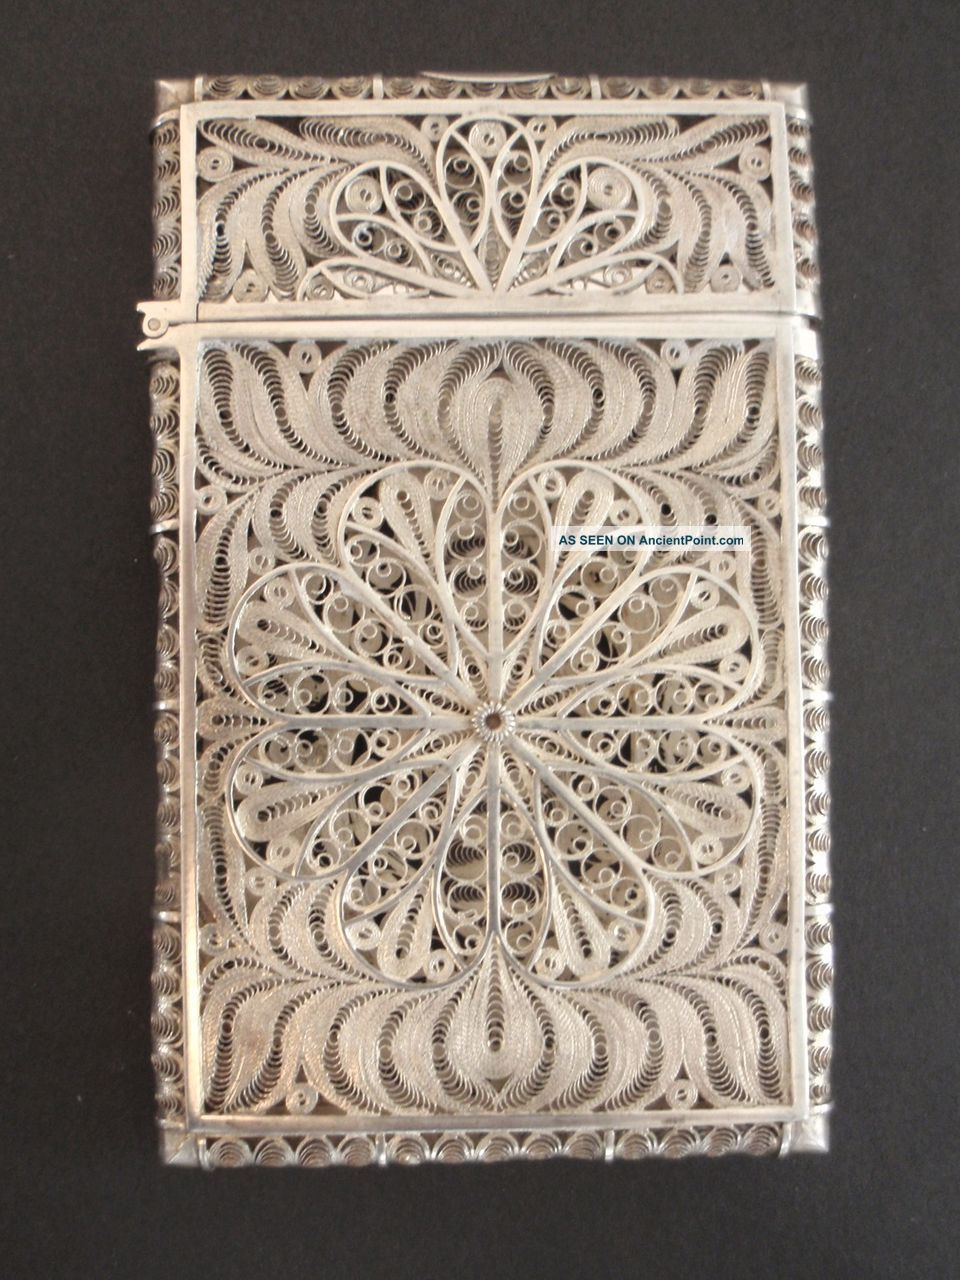 Gorgeous Antique Ornate Filigree Sterling Silver Wire - Wrap Card Case Card Cases photo